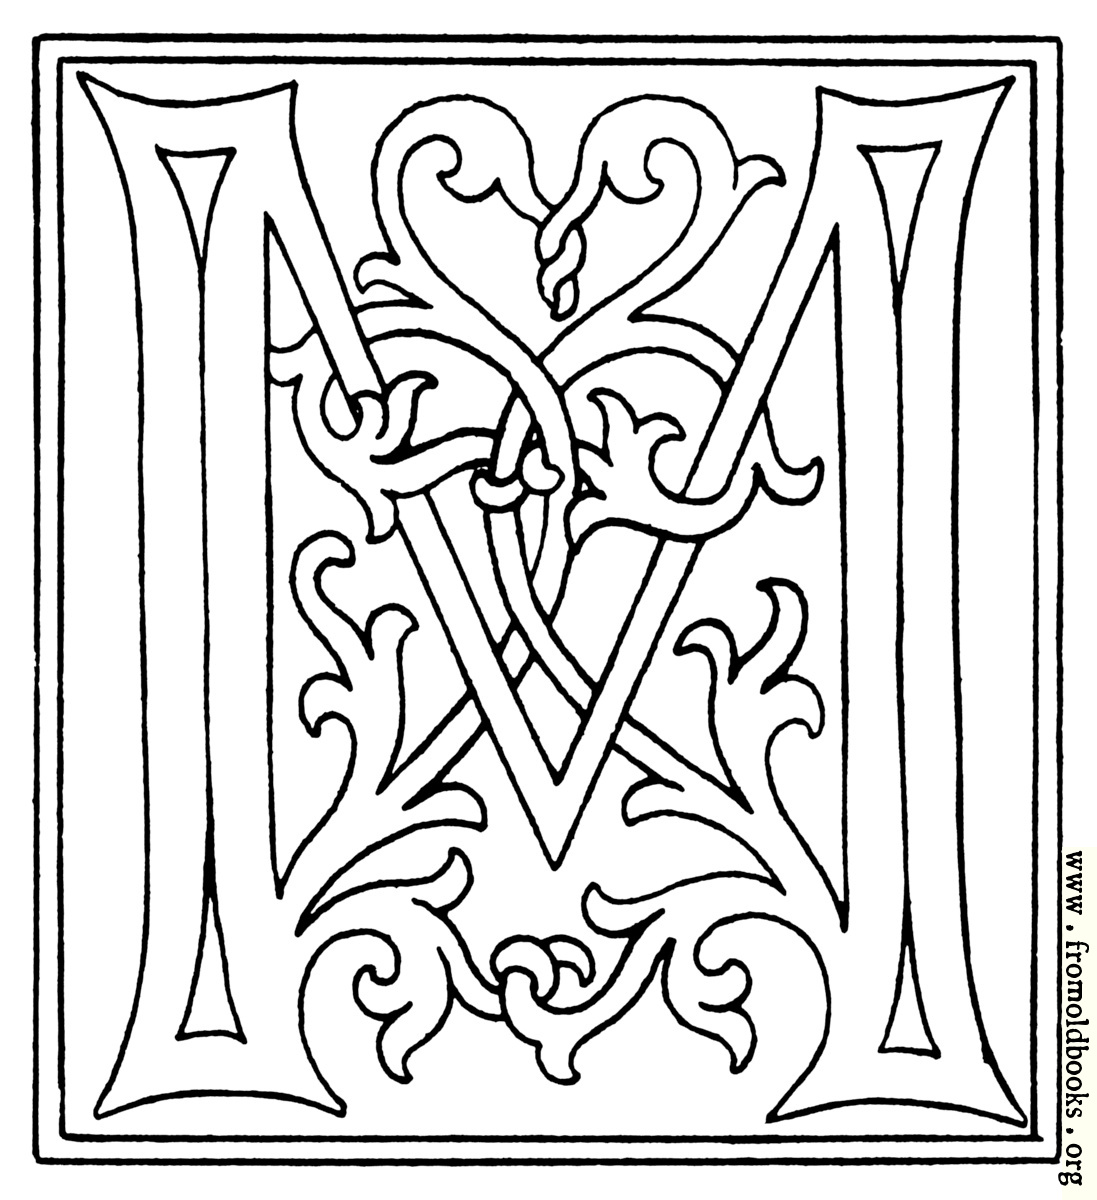 Coloring book pages letter m - 1097x1200 262k